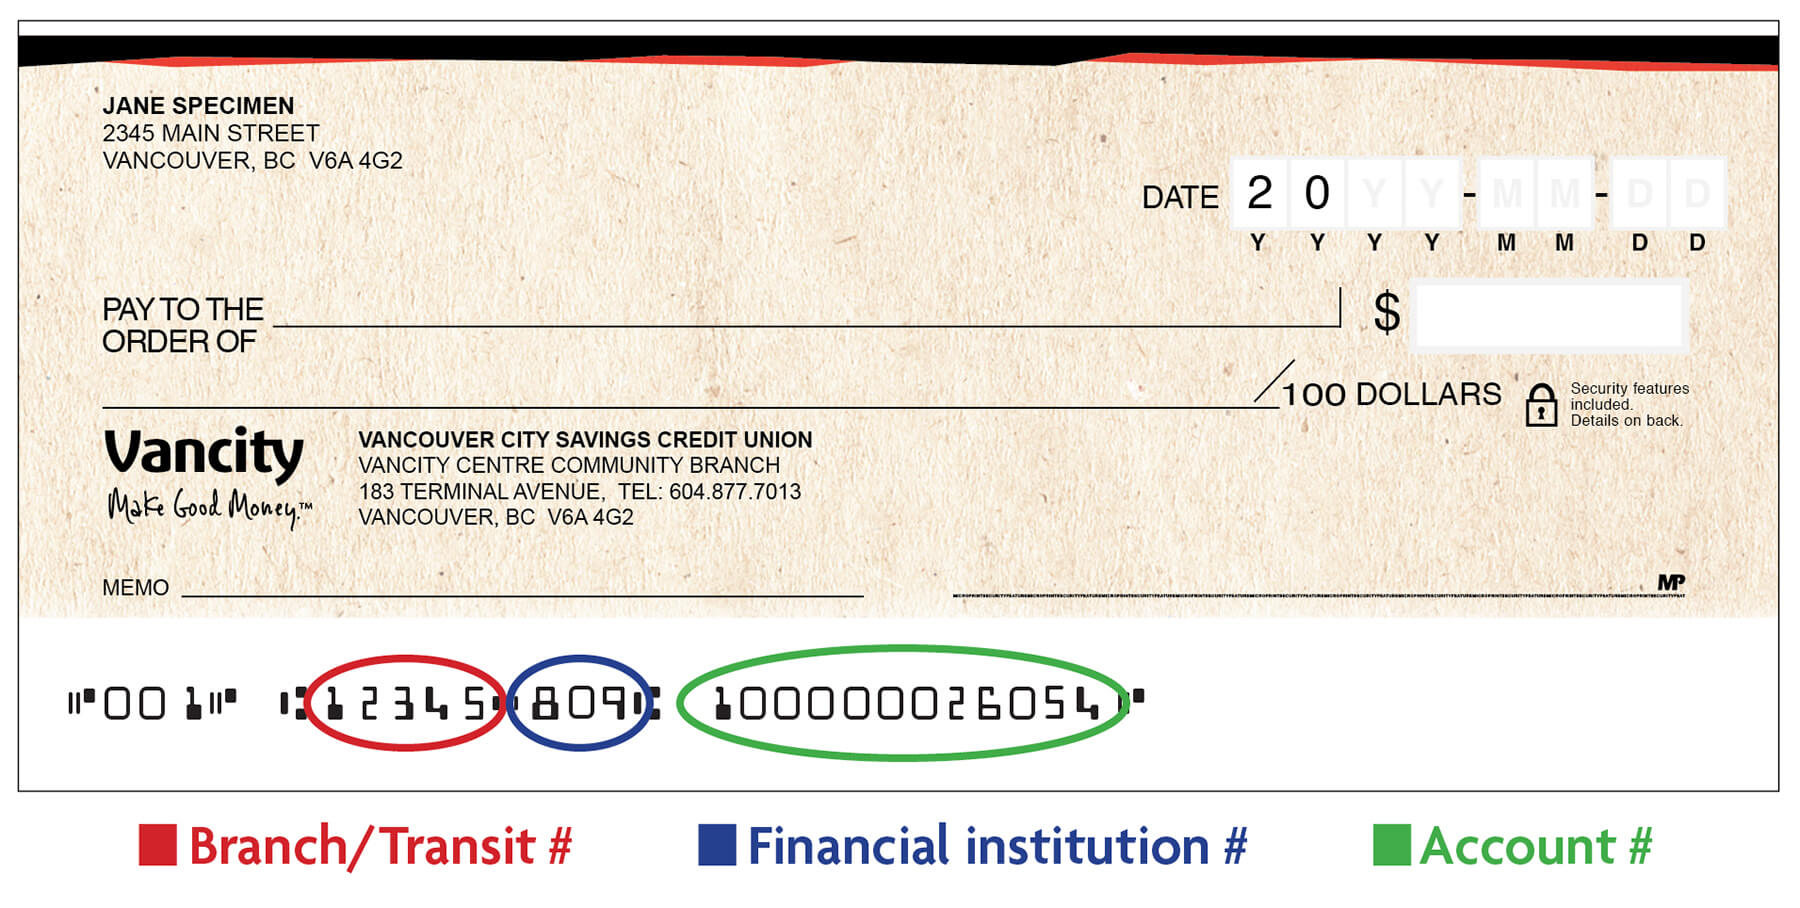 Cheque transit number